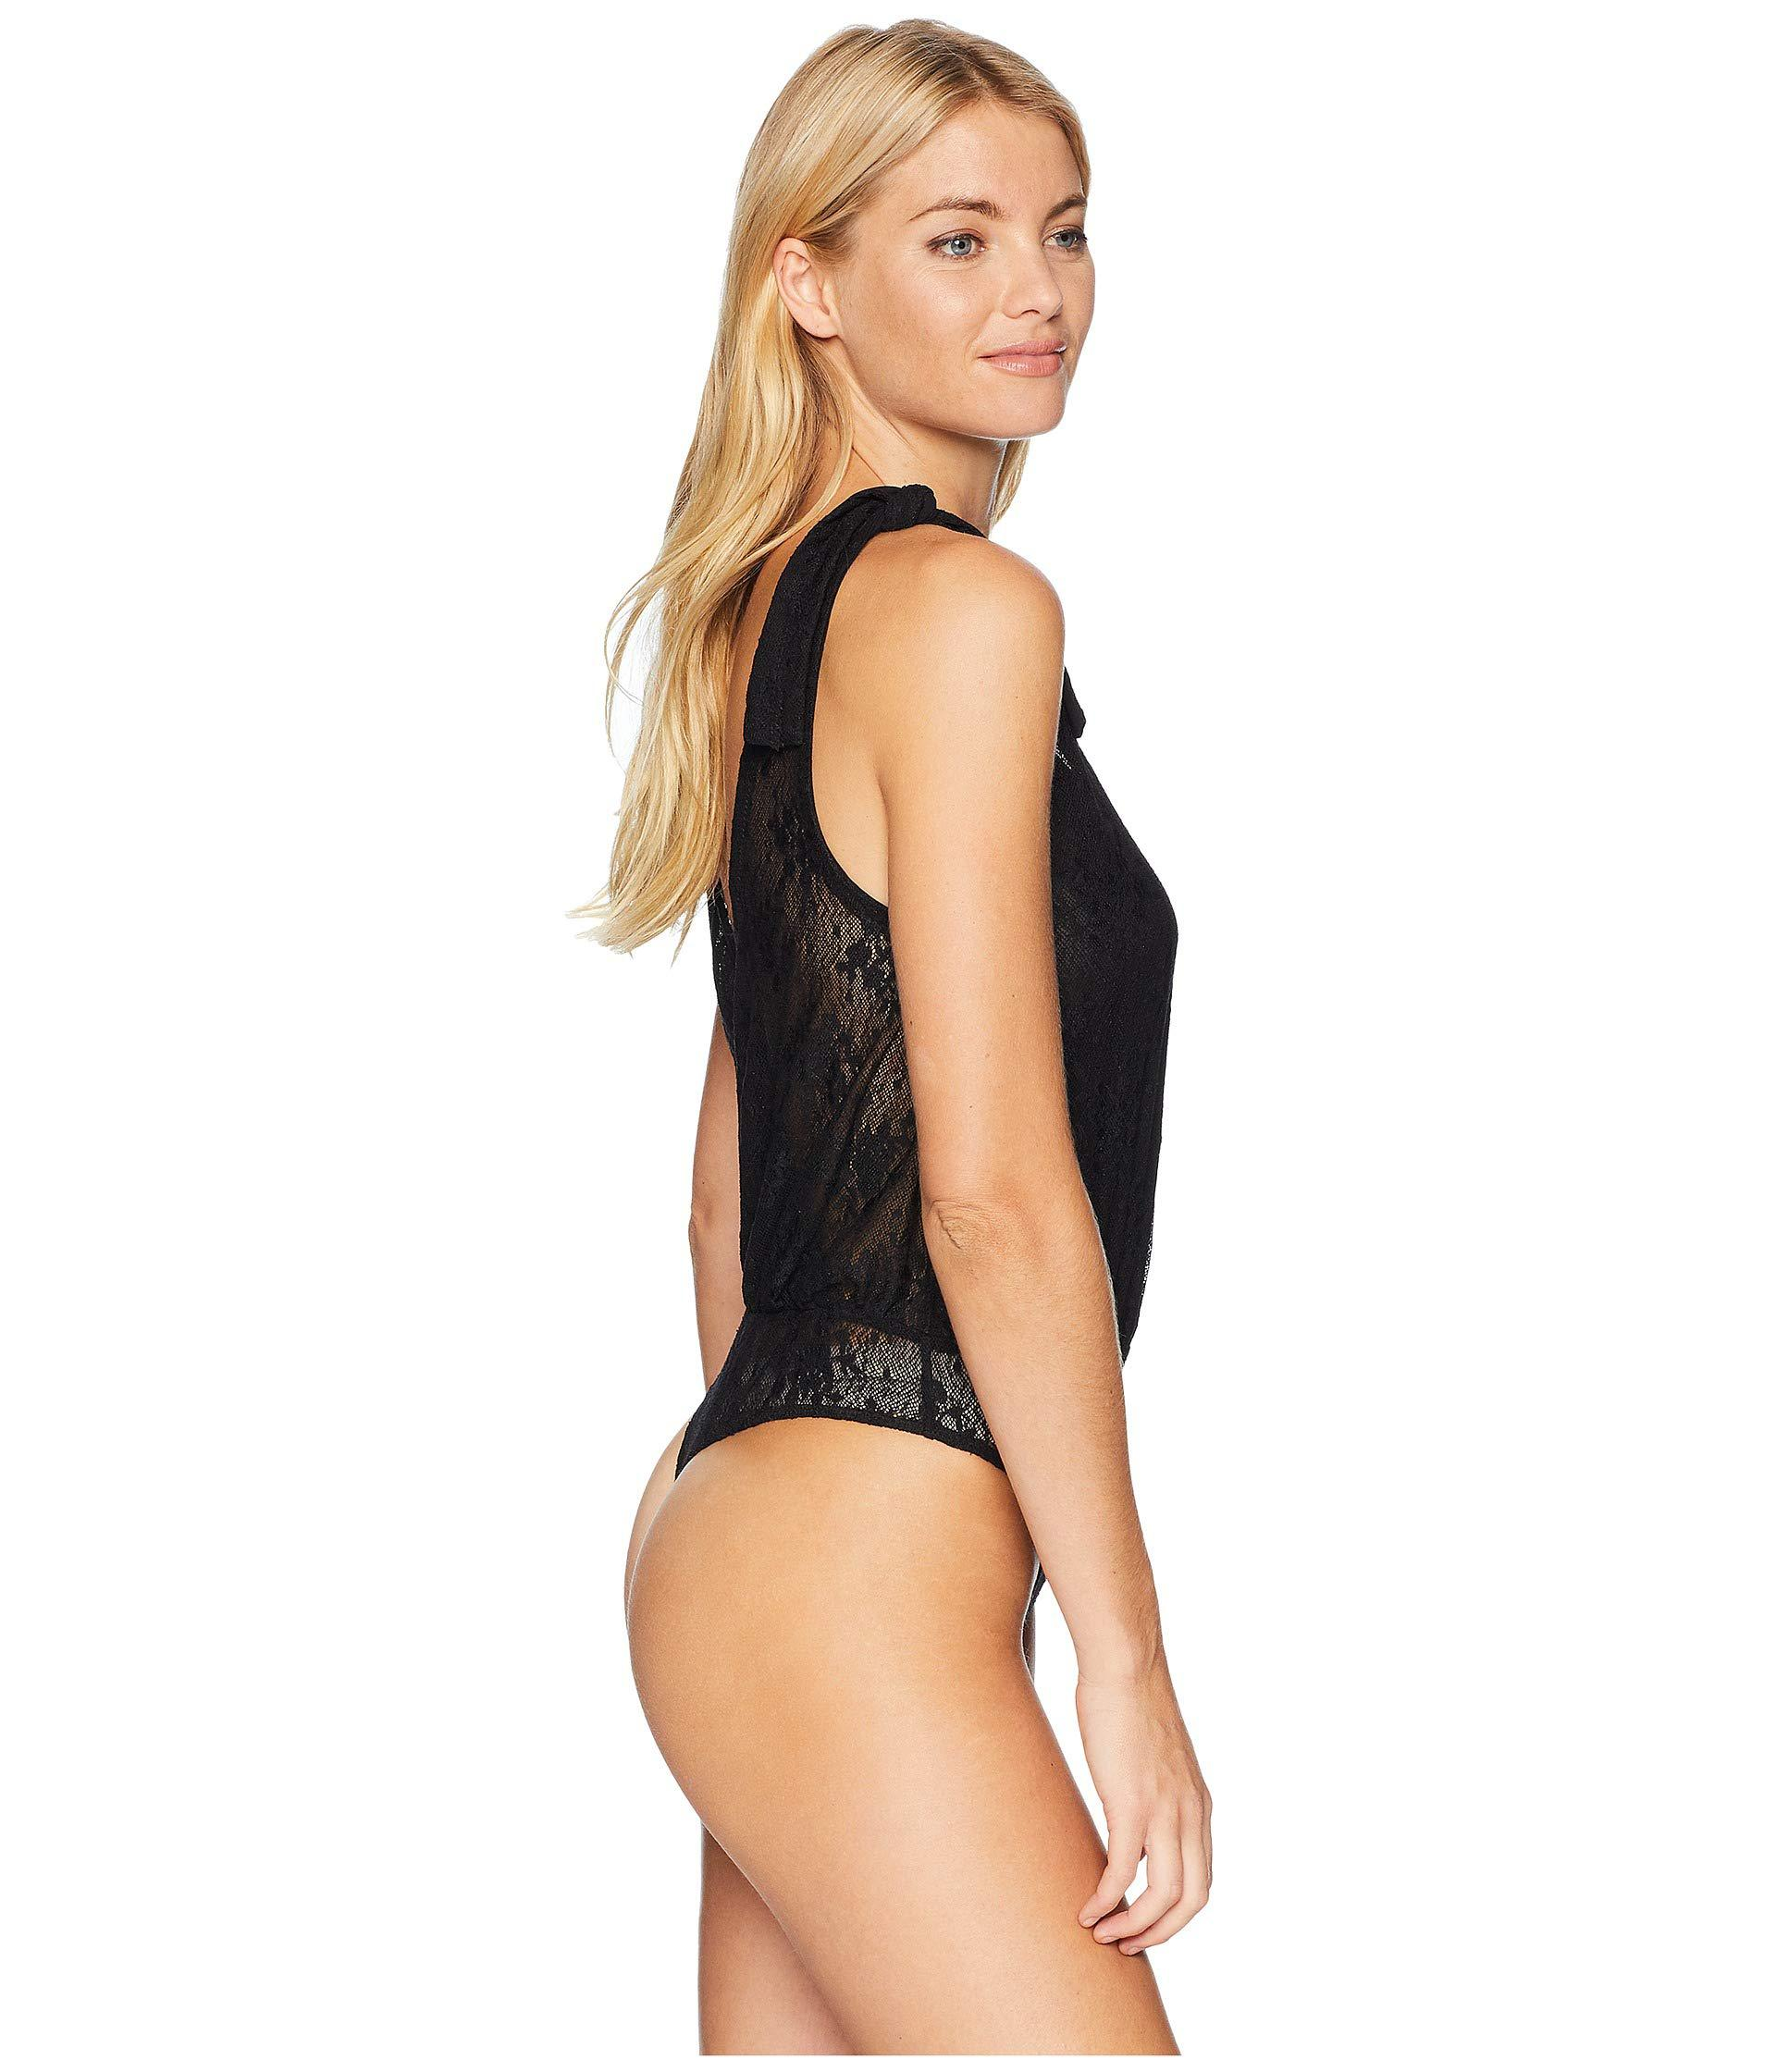 810318a66c68 ... Lace All Day Bodysuit (black) Women s Jumpsuit   Rompers One Piece.  View fullscreen